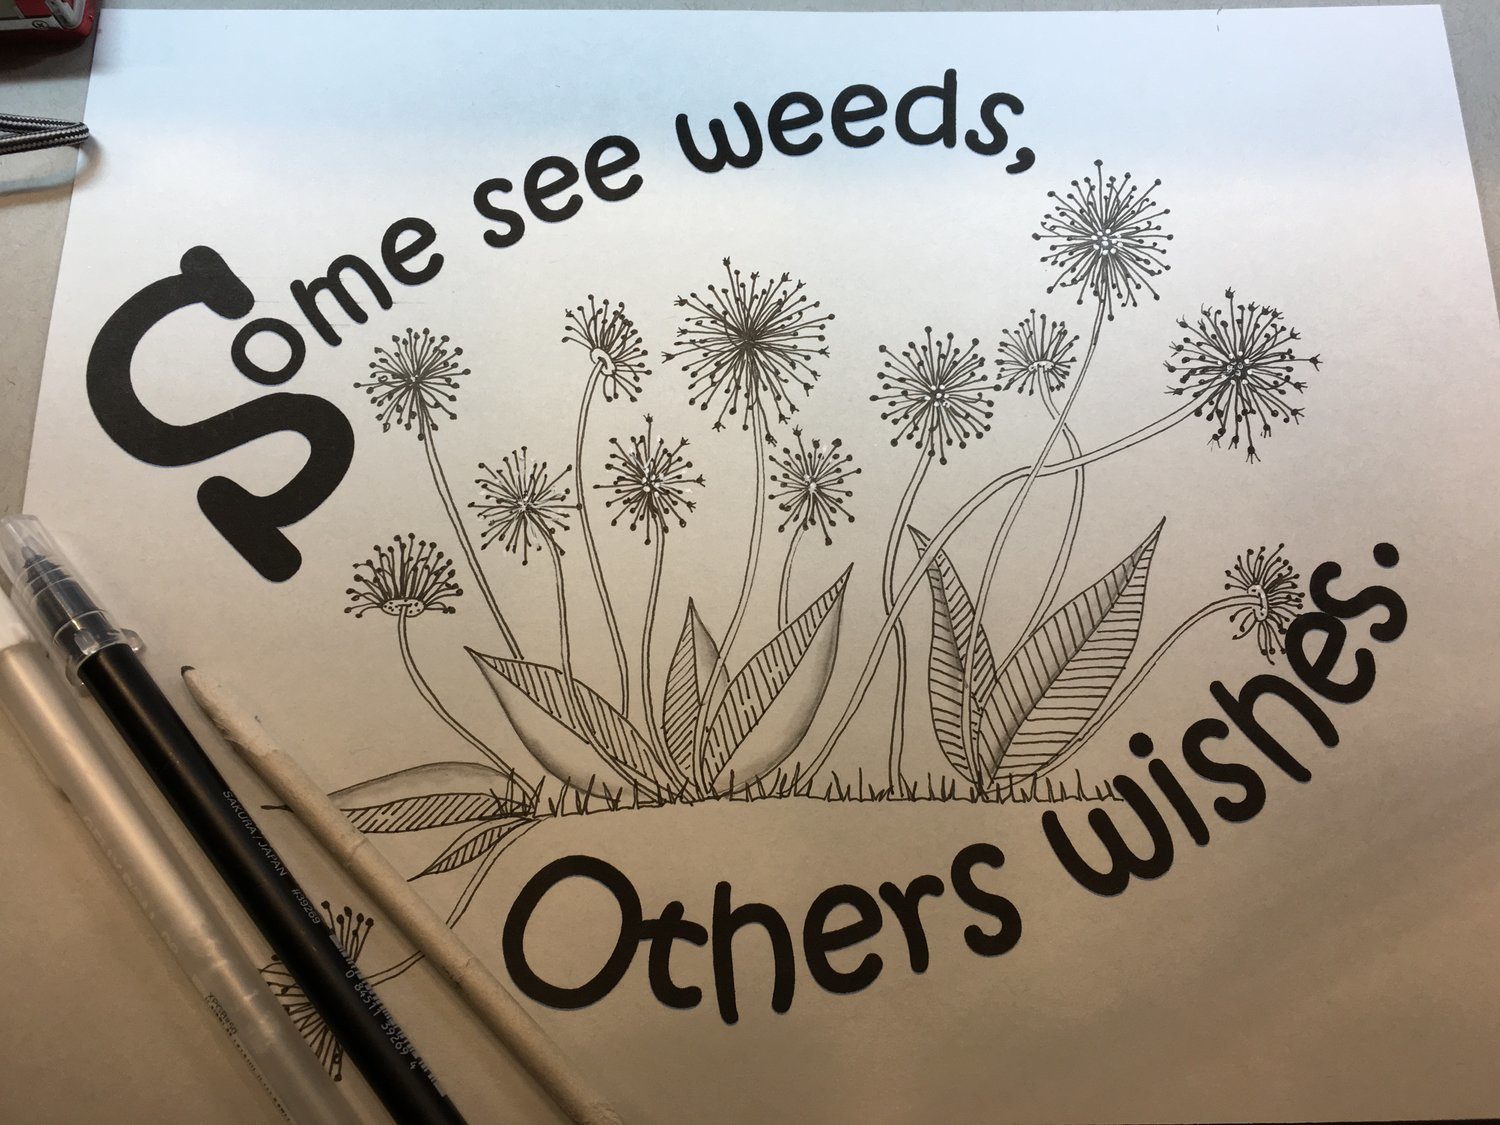 Some See weeds, others wishes